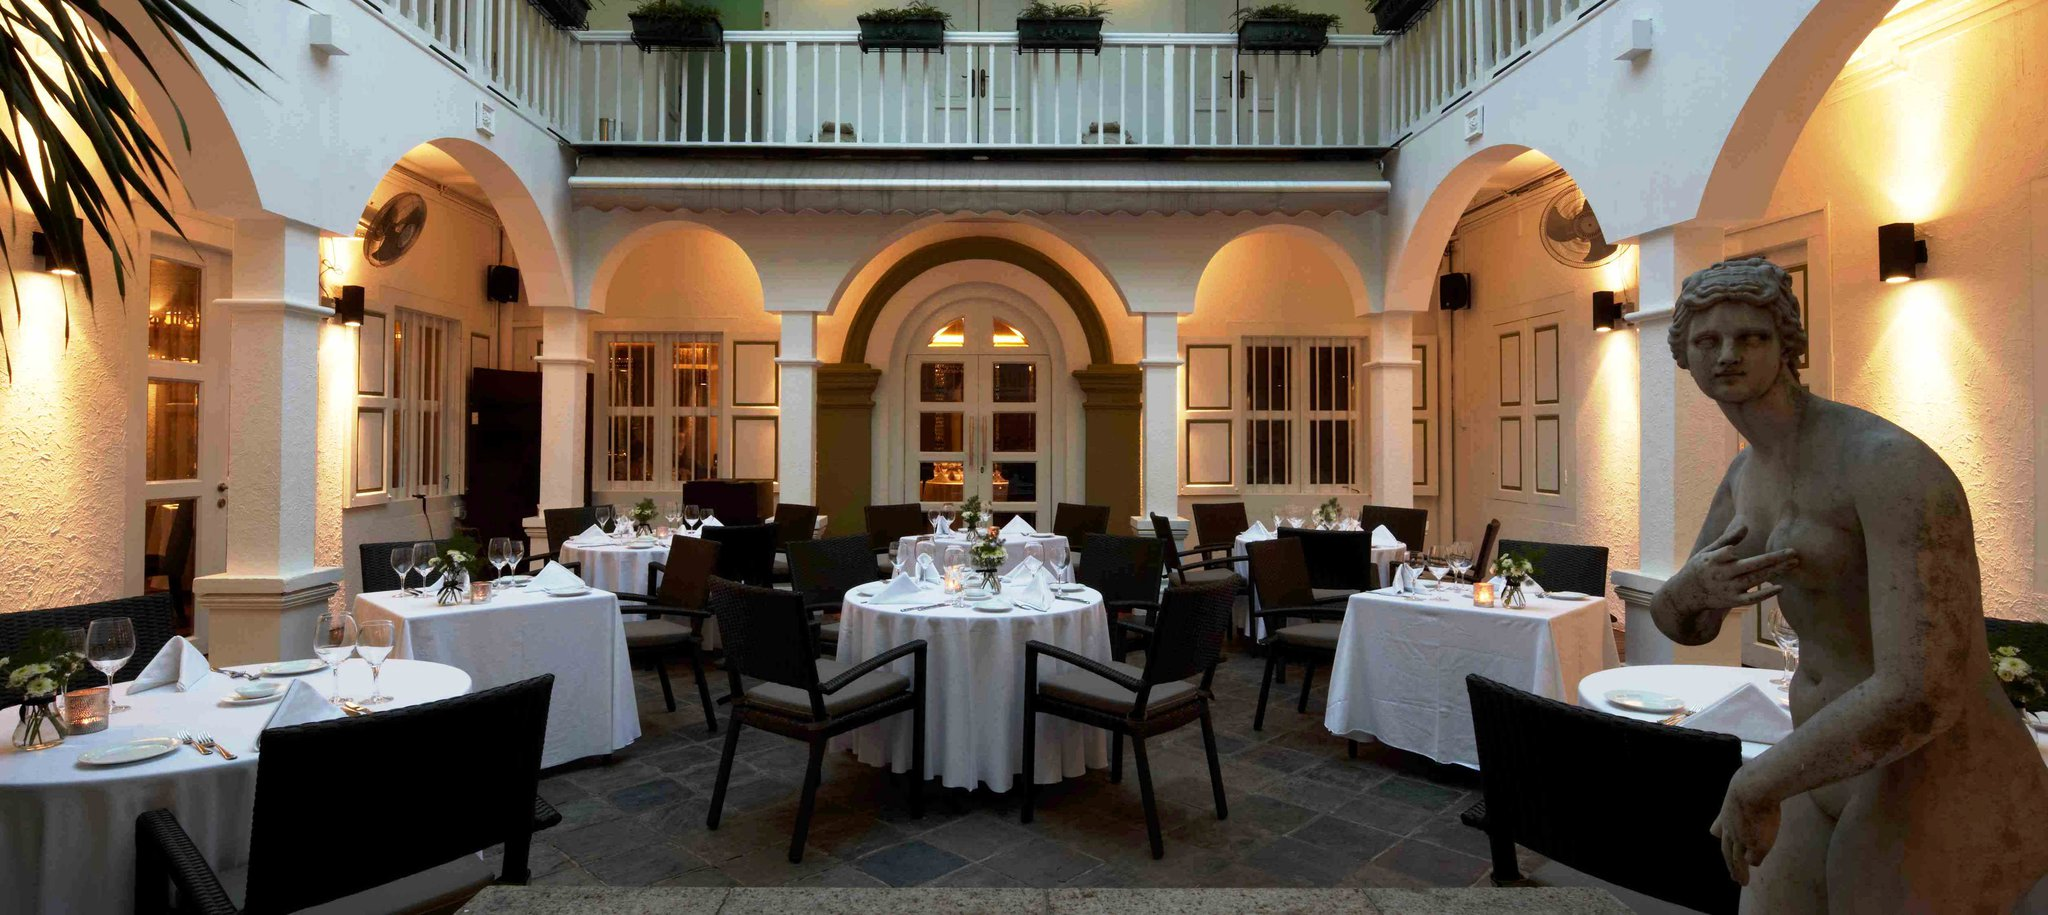 Best and most romantic restaurants for Valentine's day (2015)